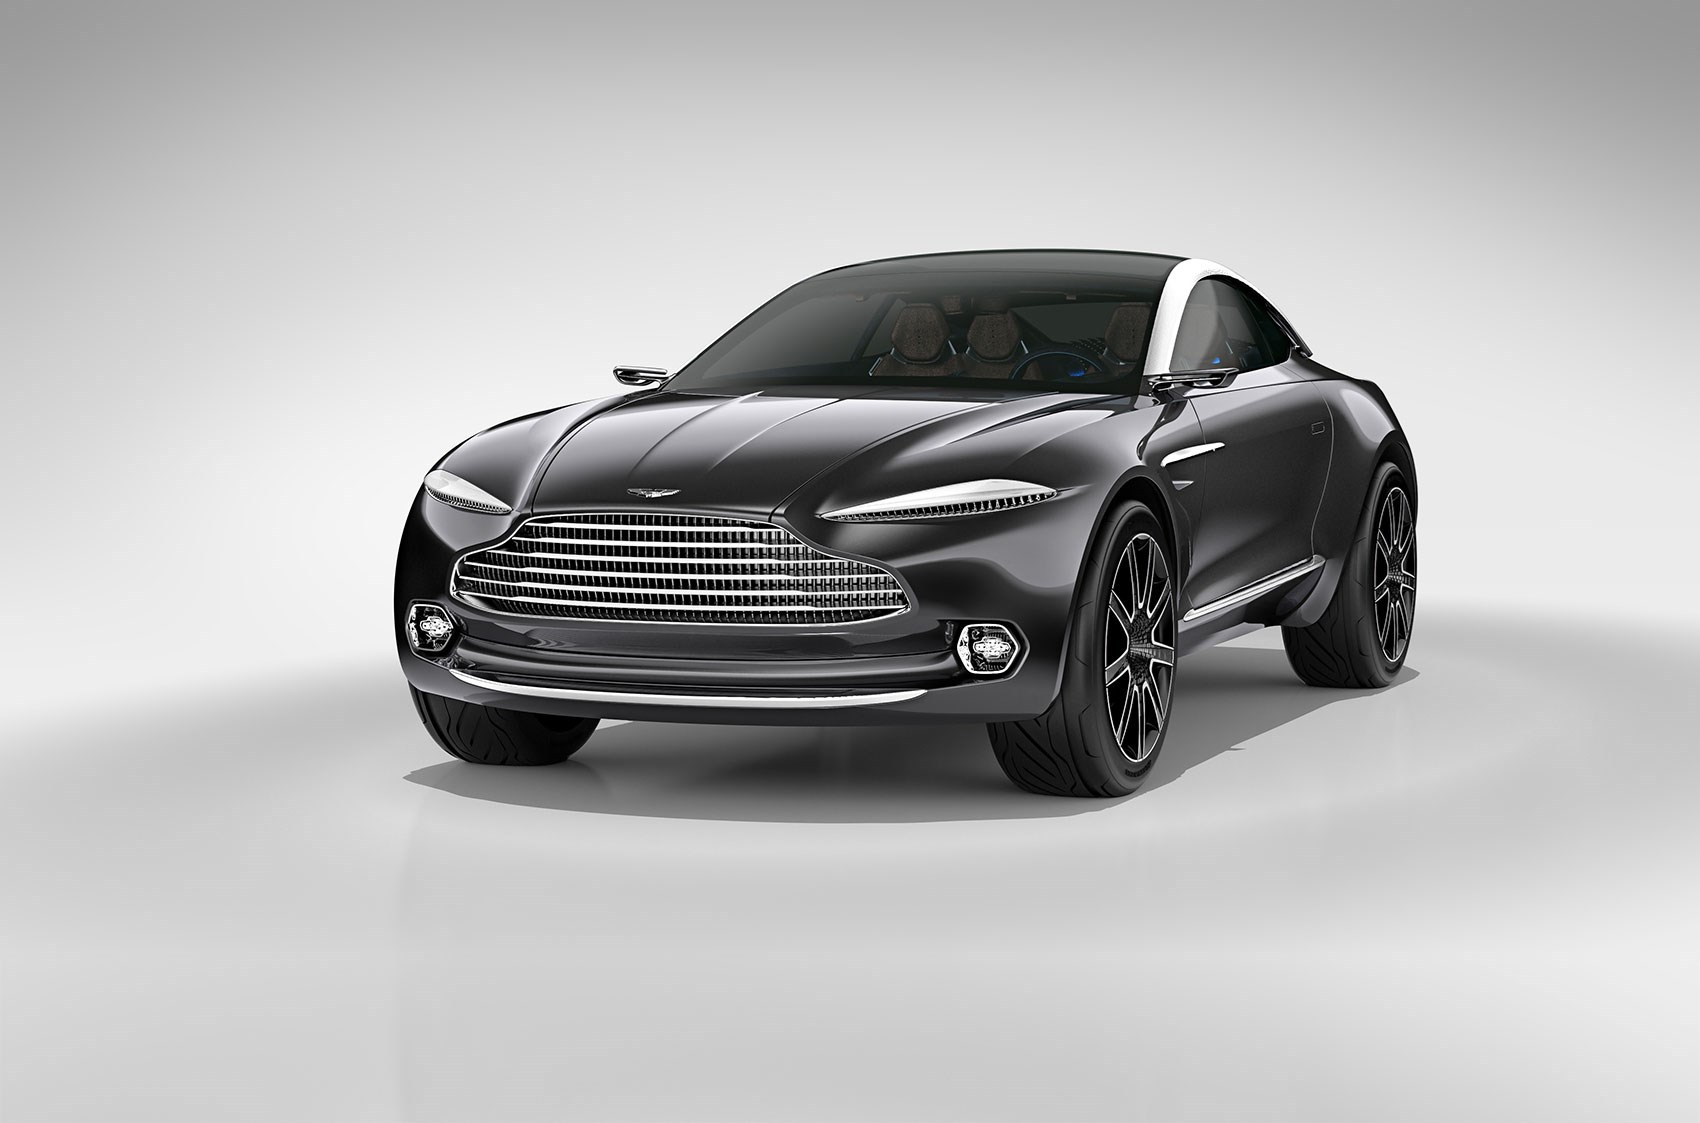 aston martin dbx crossover 39 aimed at 30 something women 39 by car magazine. Black Bedroom Furniture Sets. Home Design Ideas